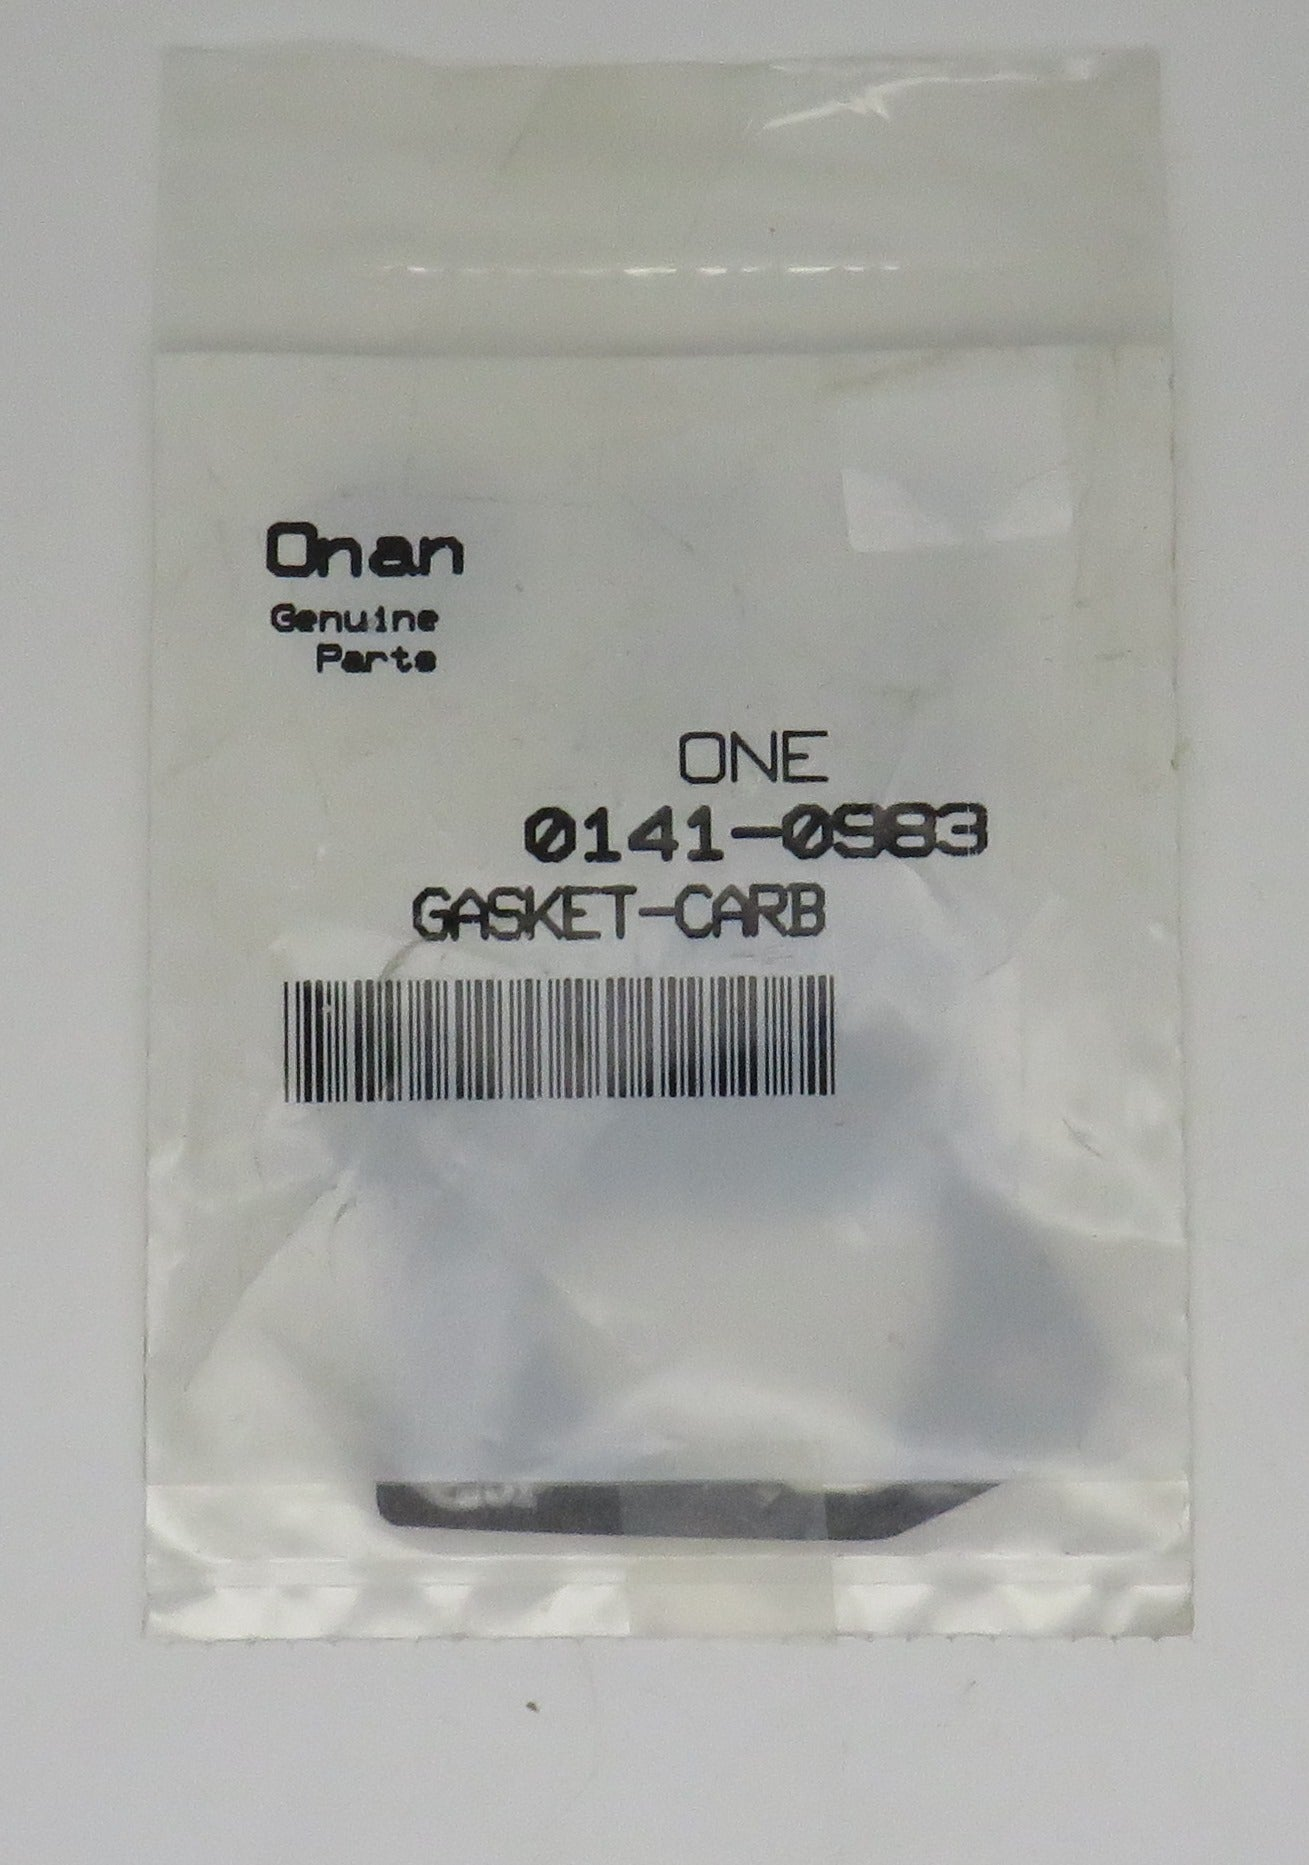 141-0983 Onan Carb Gasket. This Gasket goes with Carb kit A040N099 (Requires 1)